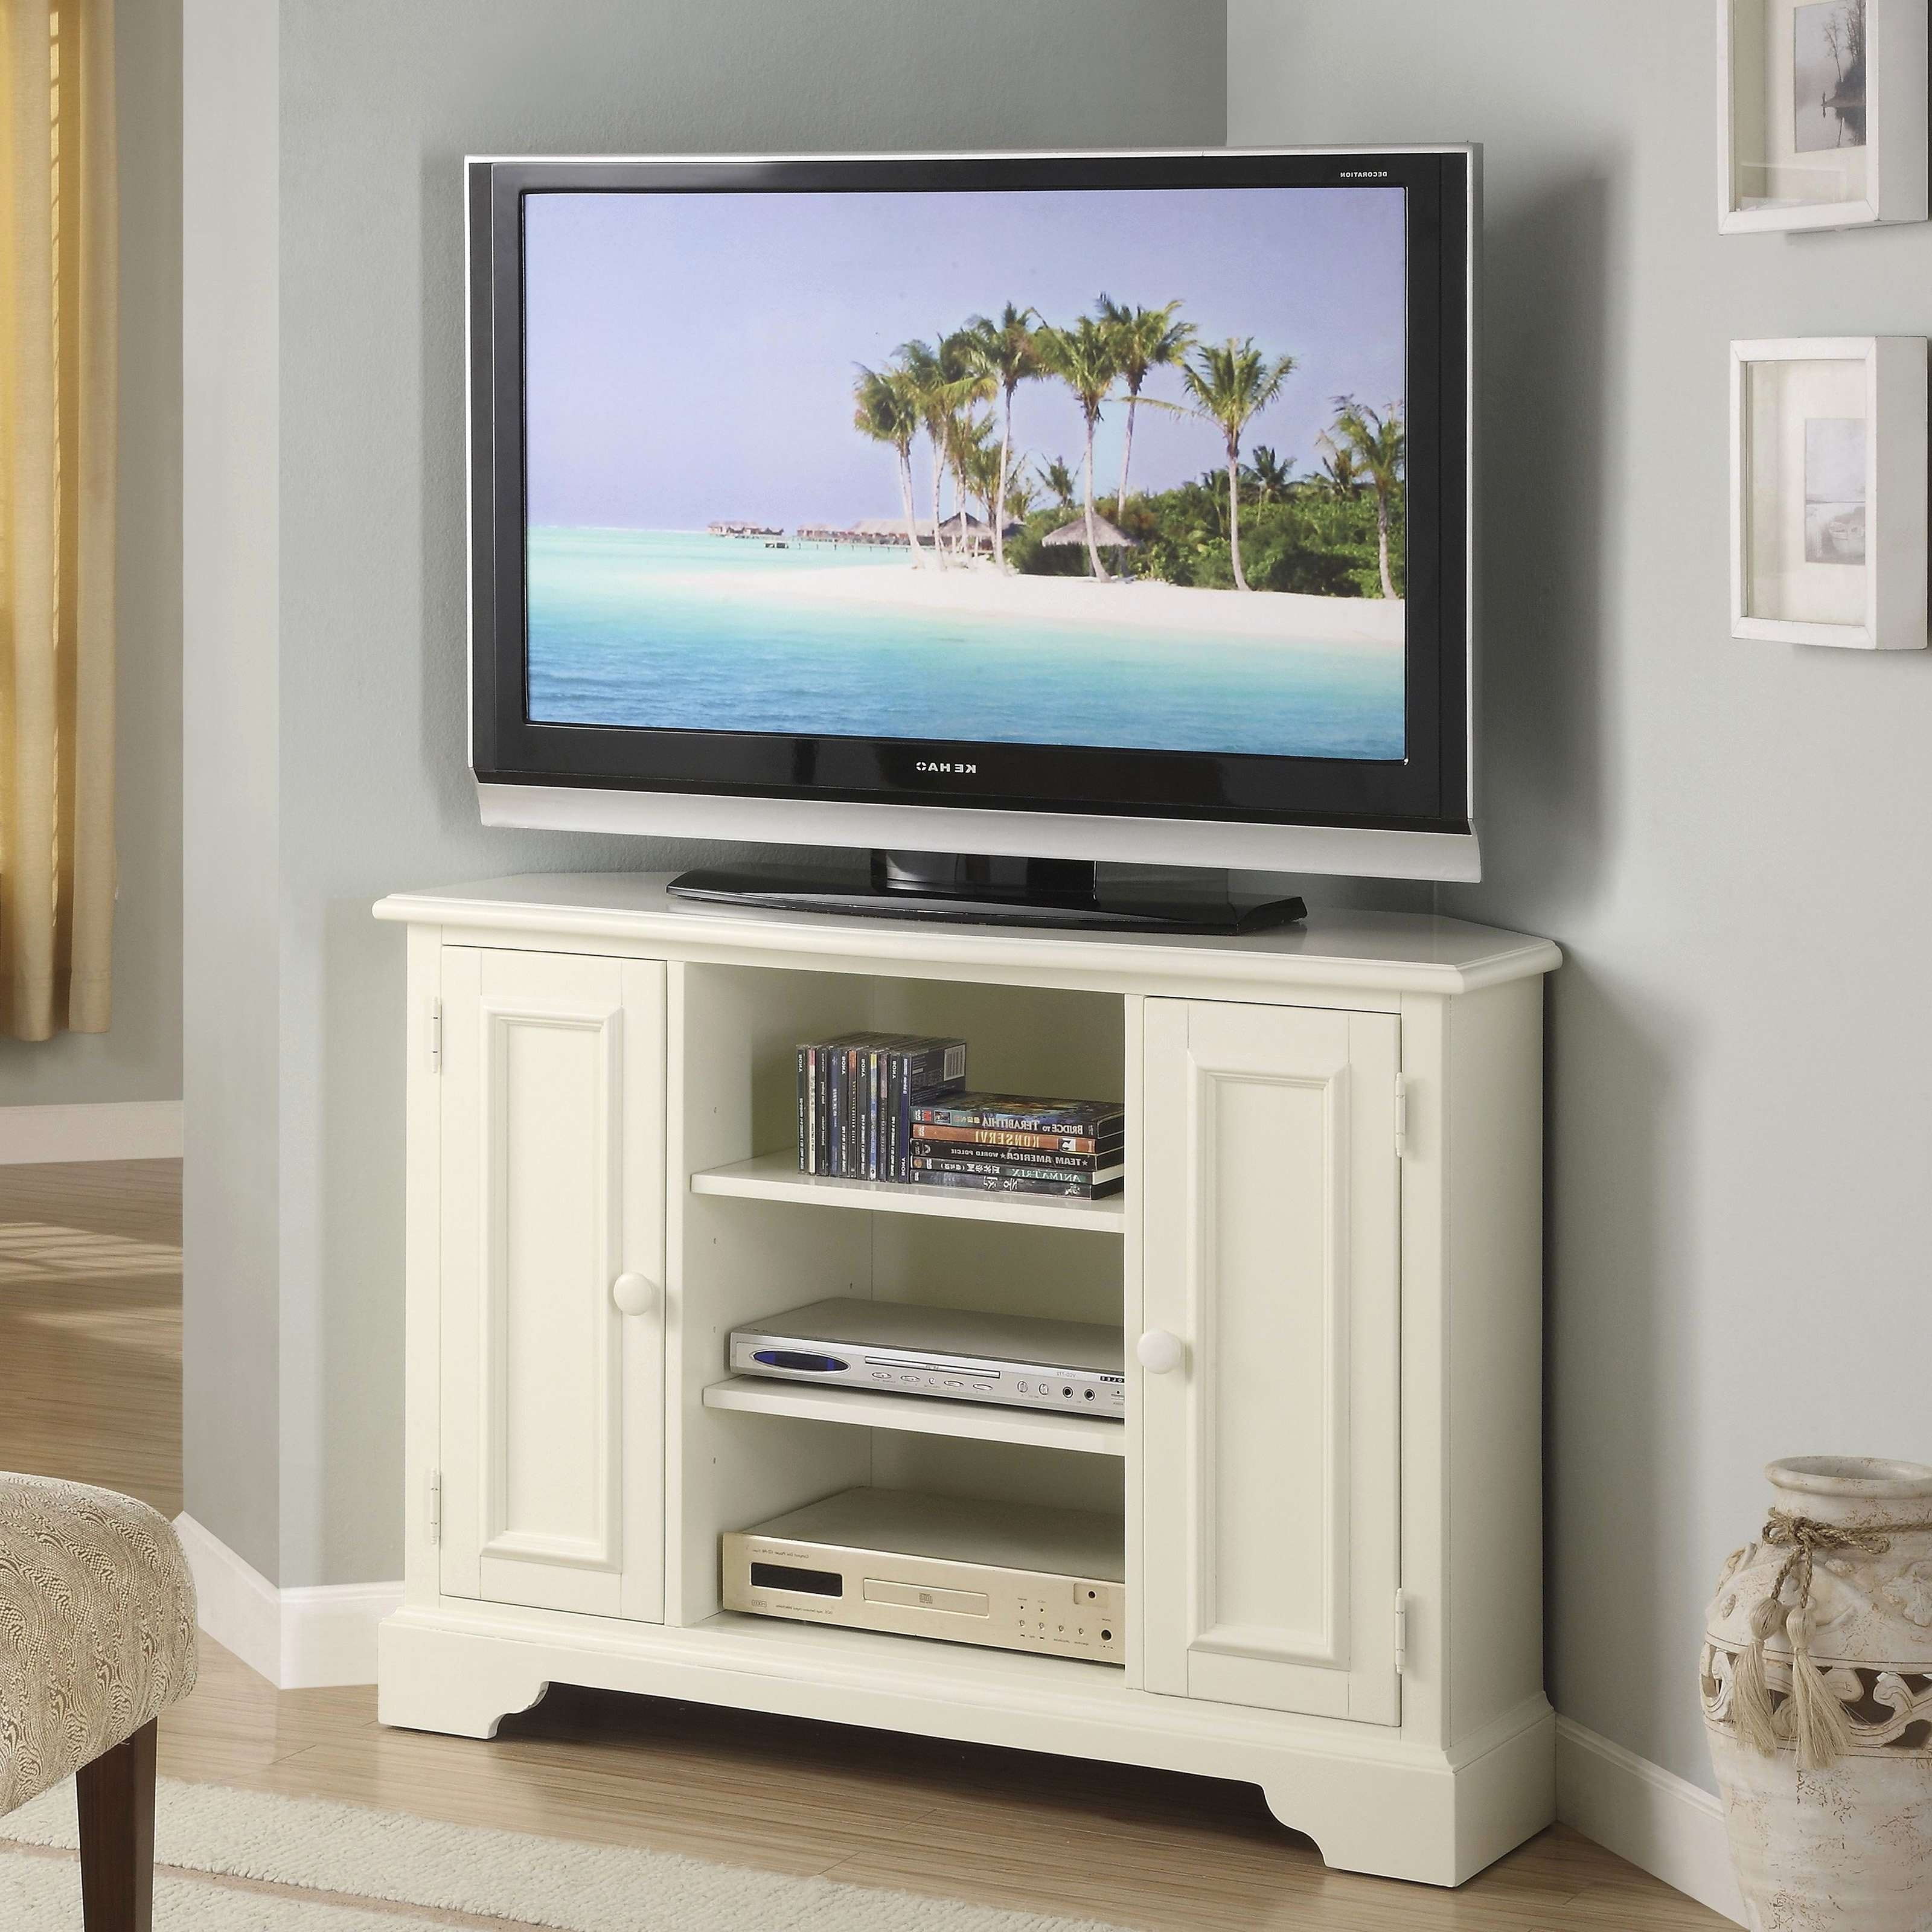 Corner Tv Stands For Flat Screen Tvs New Living Tv Stands For For Corner Tv Cabinets For Flat Screens (View 7 of 20)